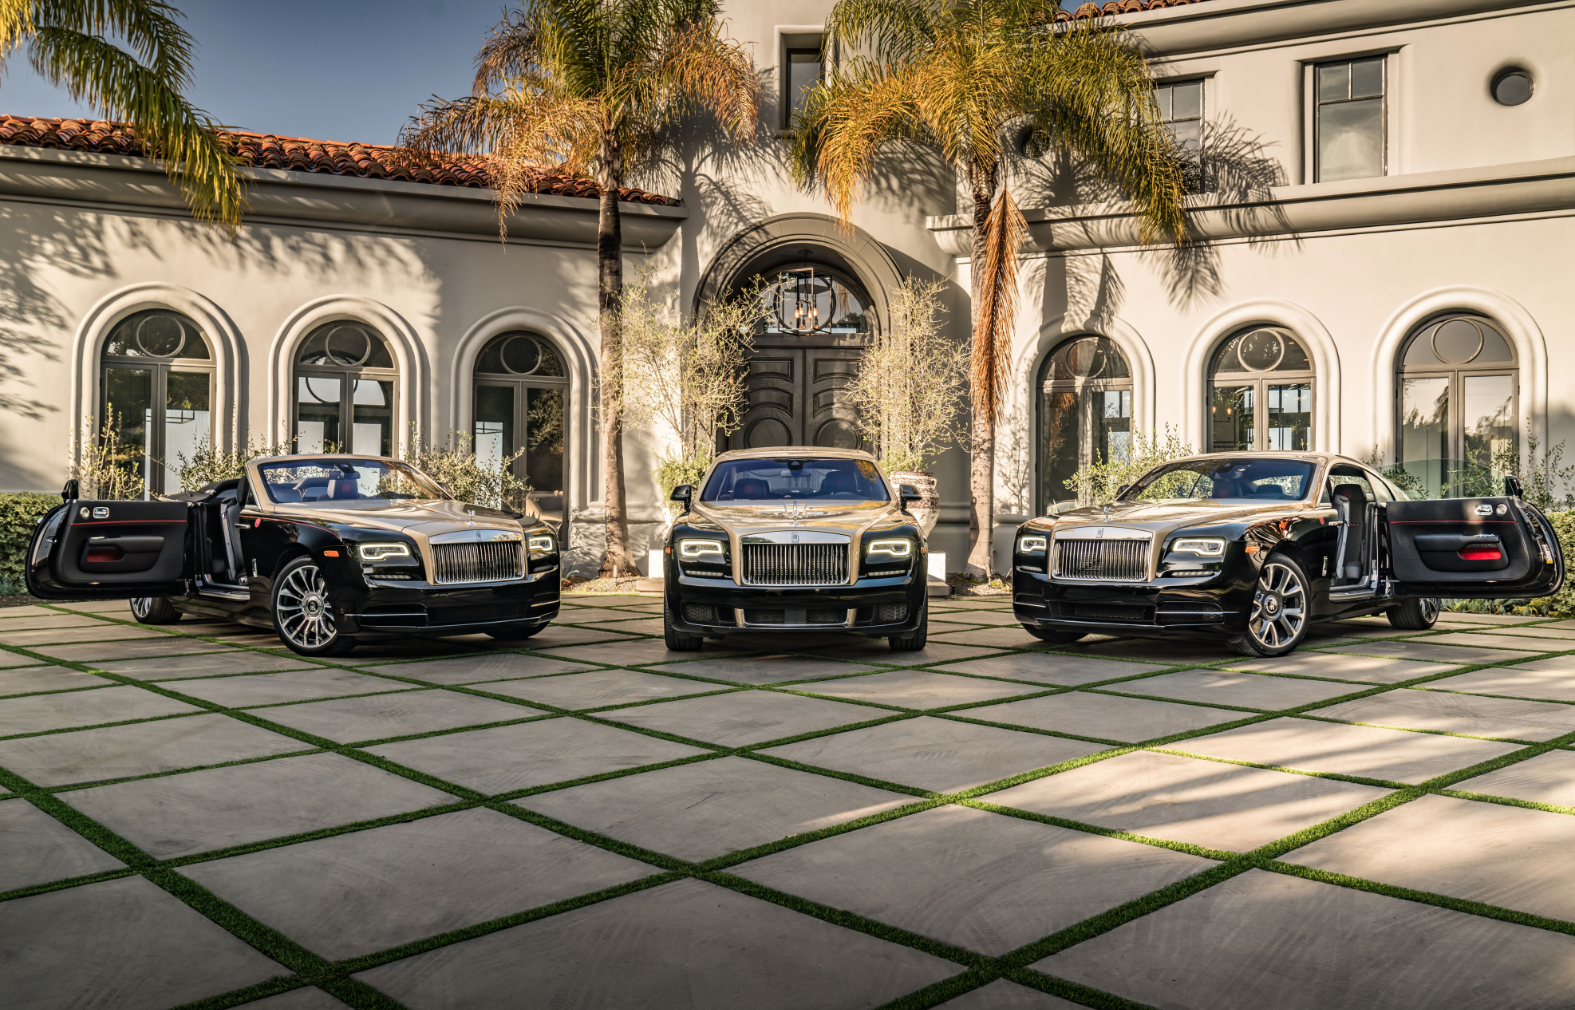 ROLLS-ROYCE MOTOR CARS BEVERLY HILLS UNVEILS BESPOKE LUNAR NEW YEAR CARS